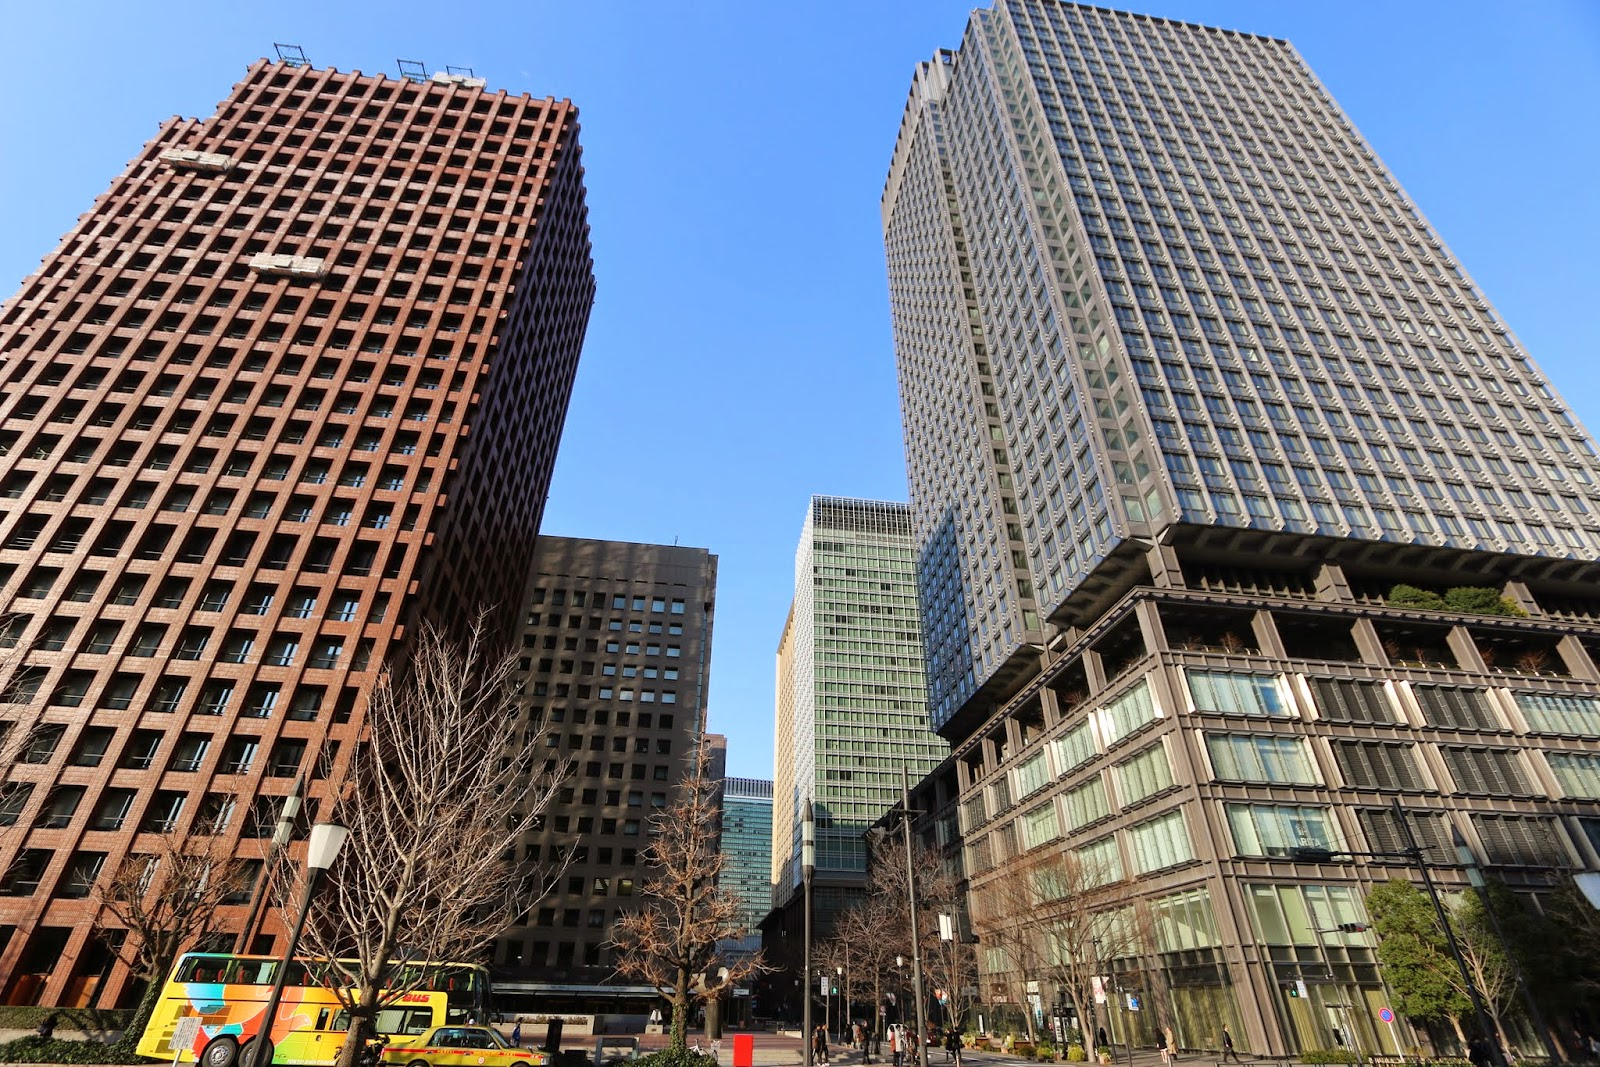 Modern skyscrapers at Marunouchi business district, close to Tokyo Station and Imperial Palace in Tokyo, Japan